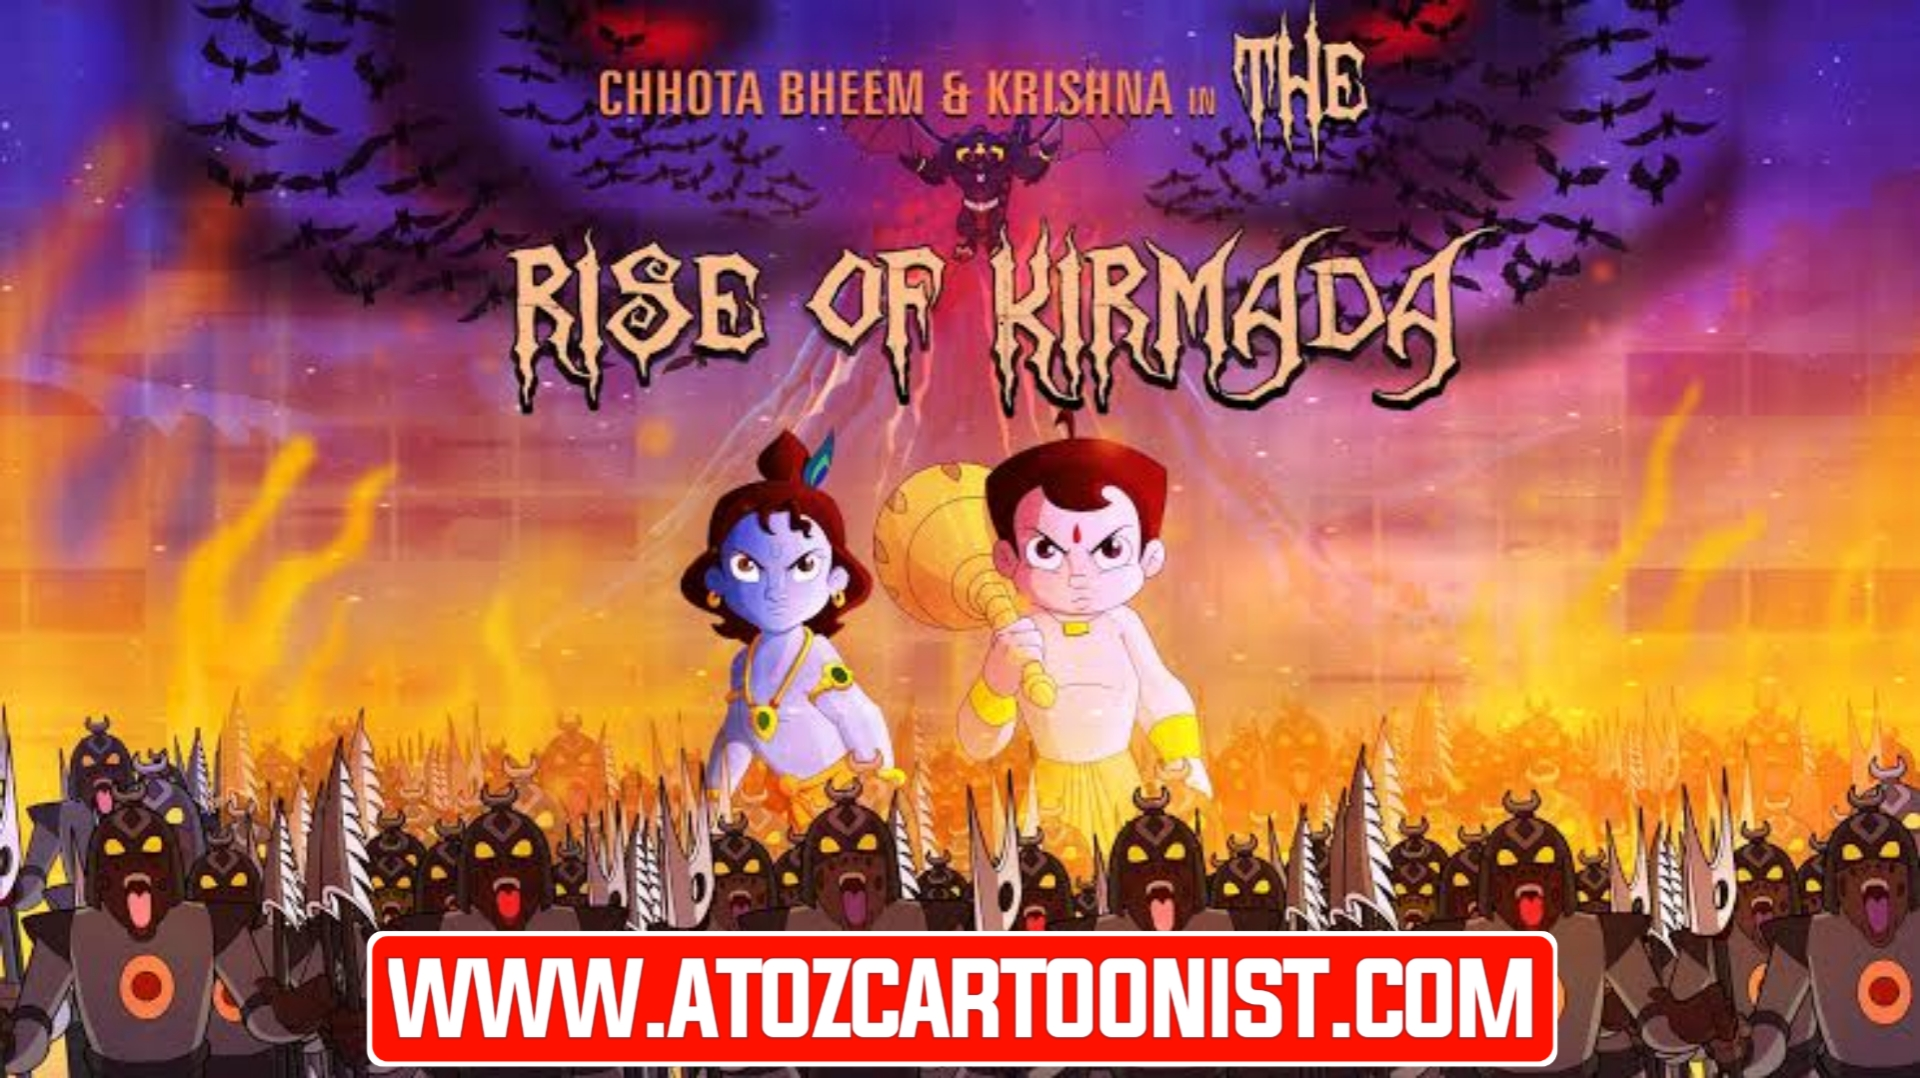 CHHOTA BHEEM & KRISHNA IN THE RISE OF KIRMADA FULL MOVIE IN HINDI & TAMIL DOWNLOAD (480P, 720P & 1080P)